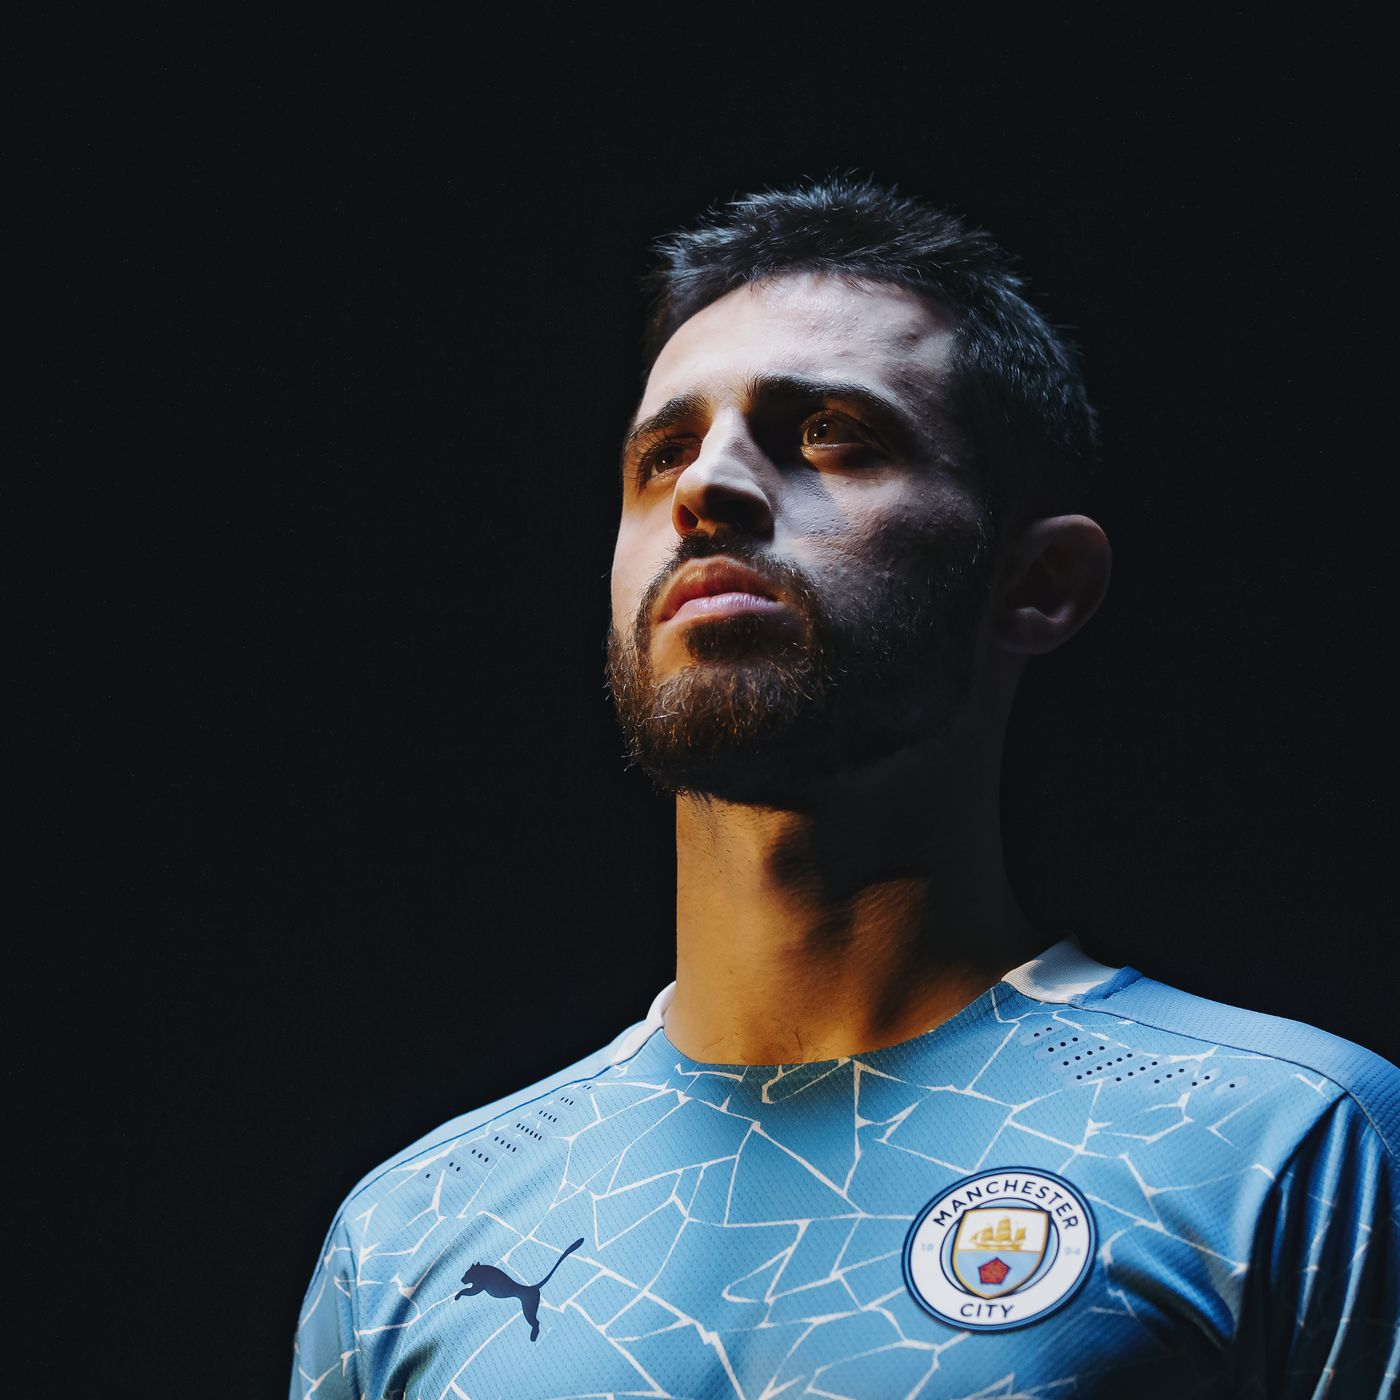 Manchester City 21 22 Home Kit Leaked Bitter And Blue